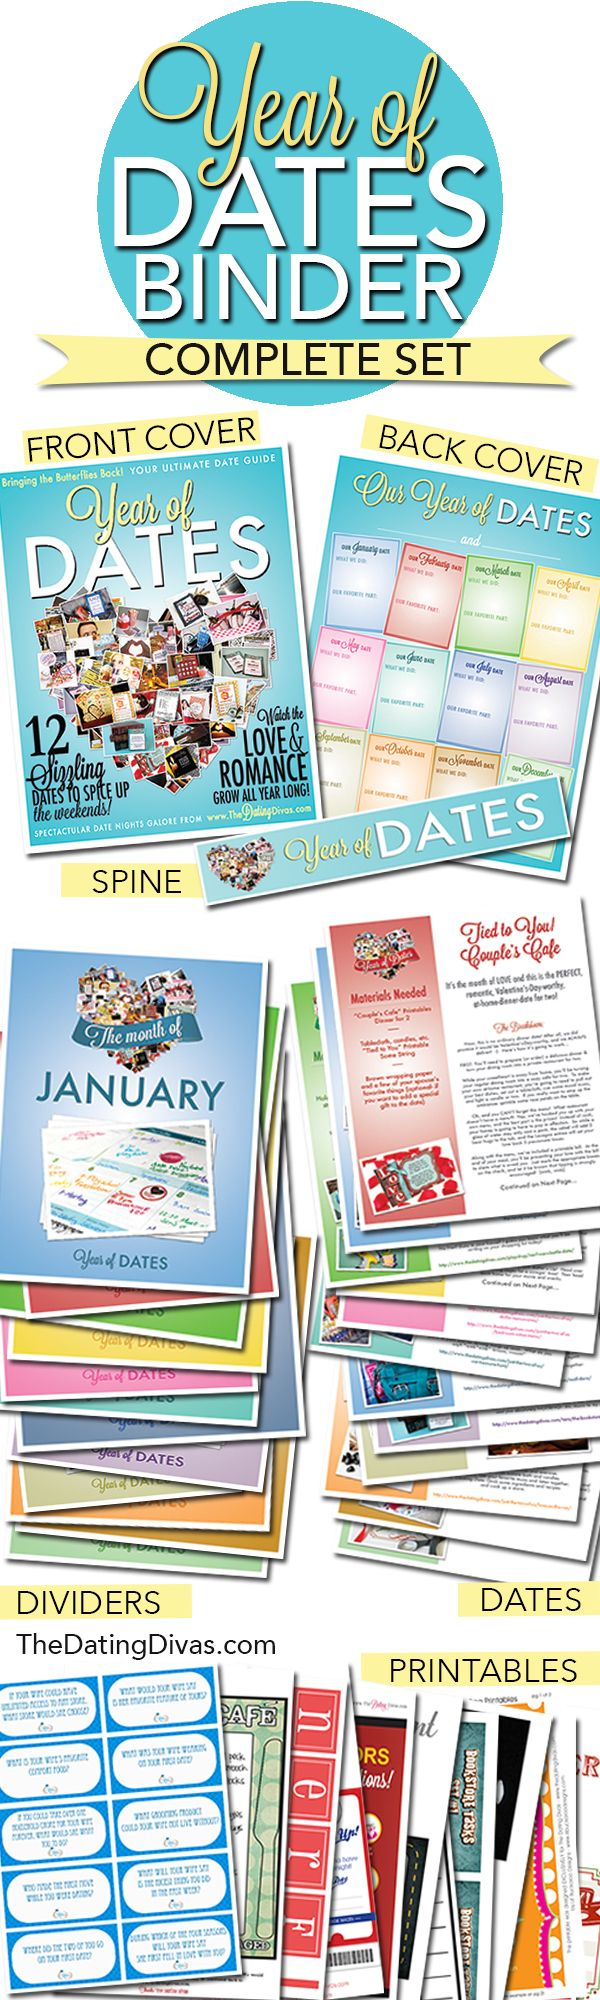 Want to plan a Year of Dates Gift for your love? The Dating Divas Binder printables make it SO EASY and they are so cheap at under $10 (and that is WITH 12 date nights already in there!)